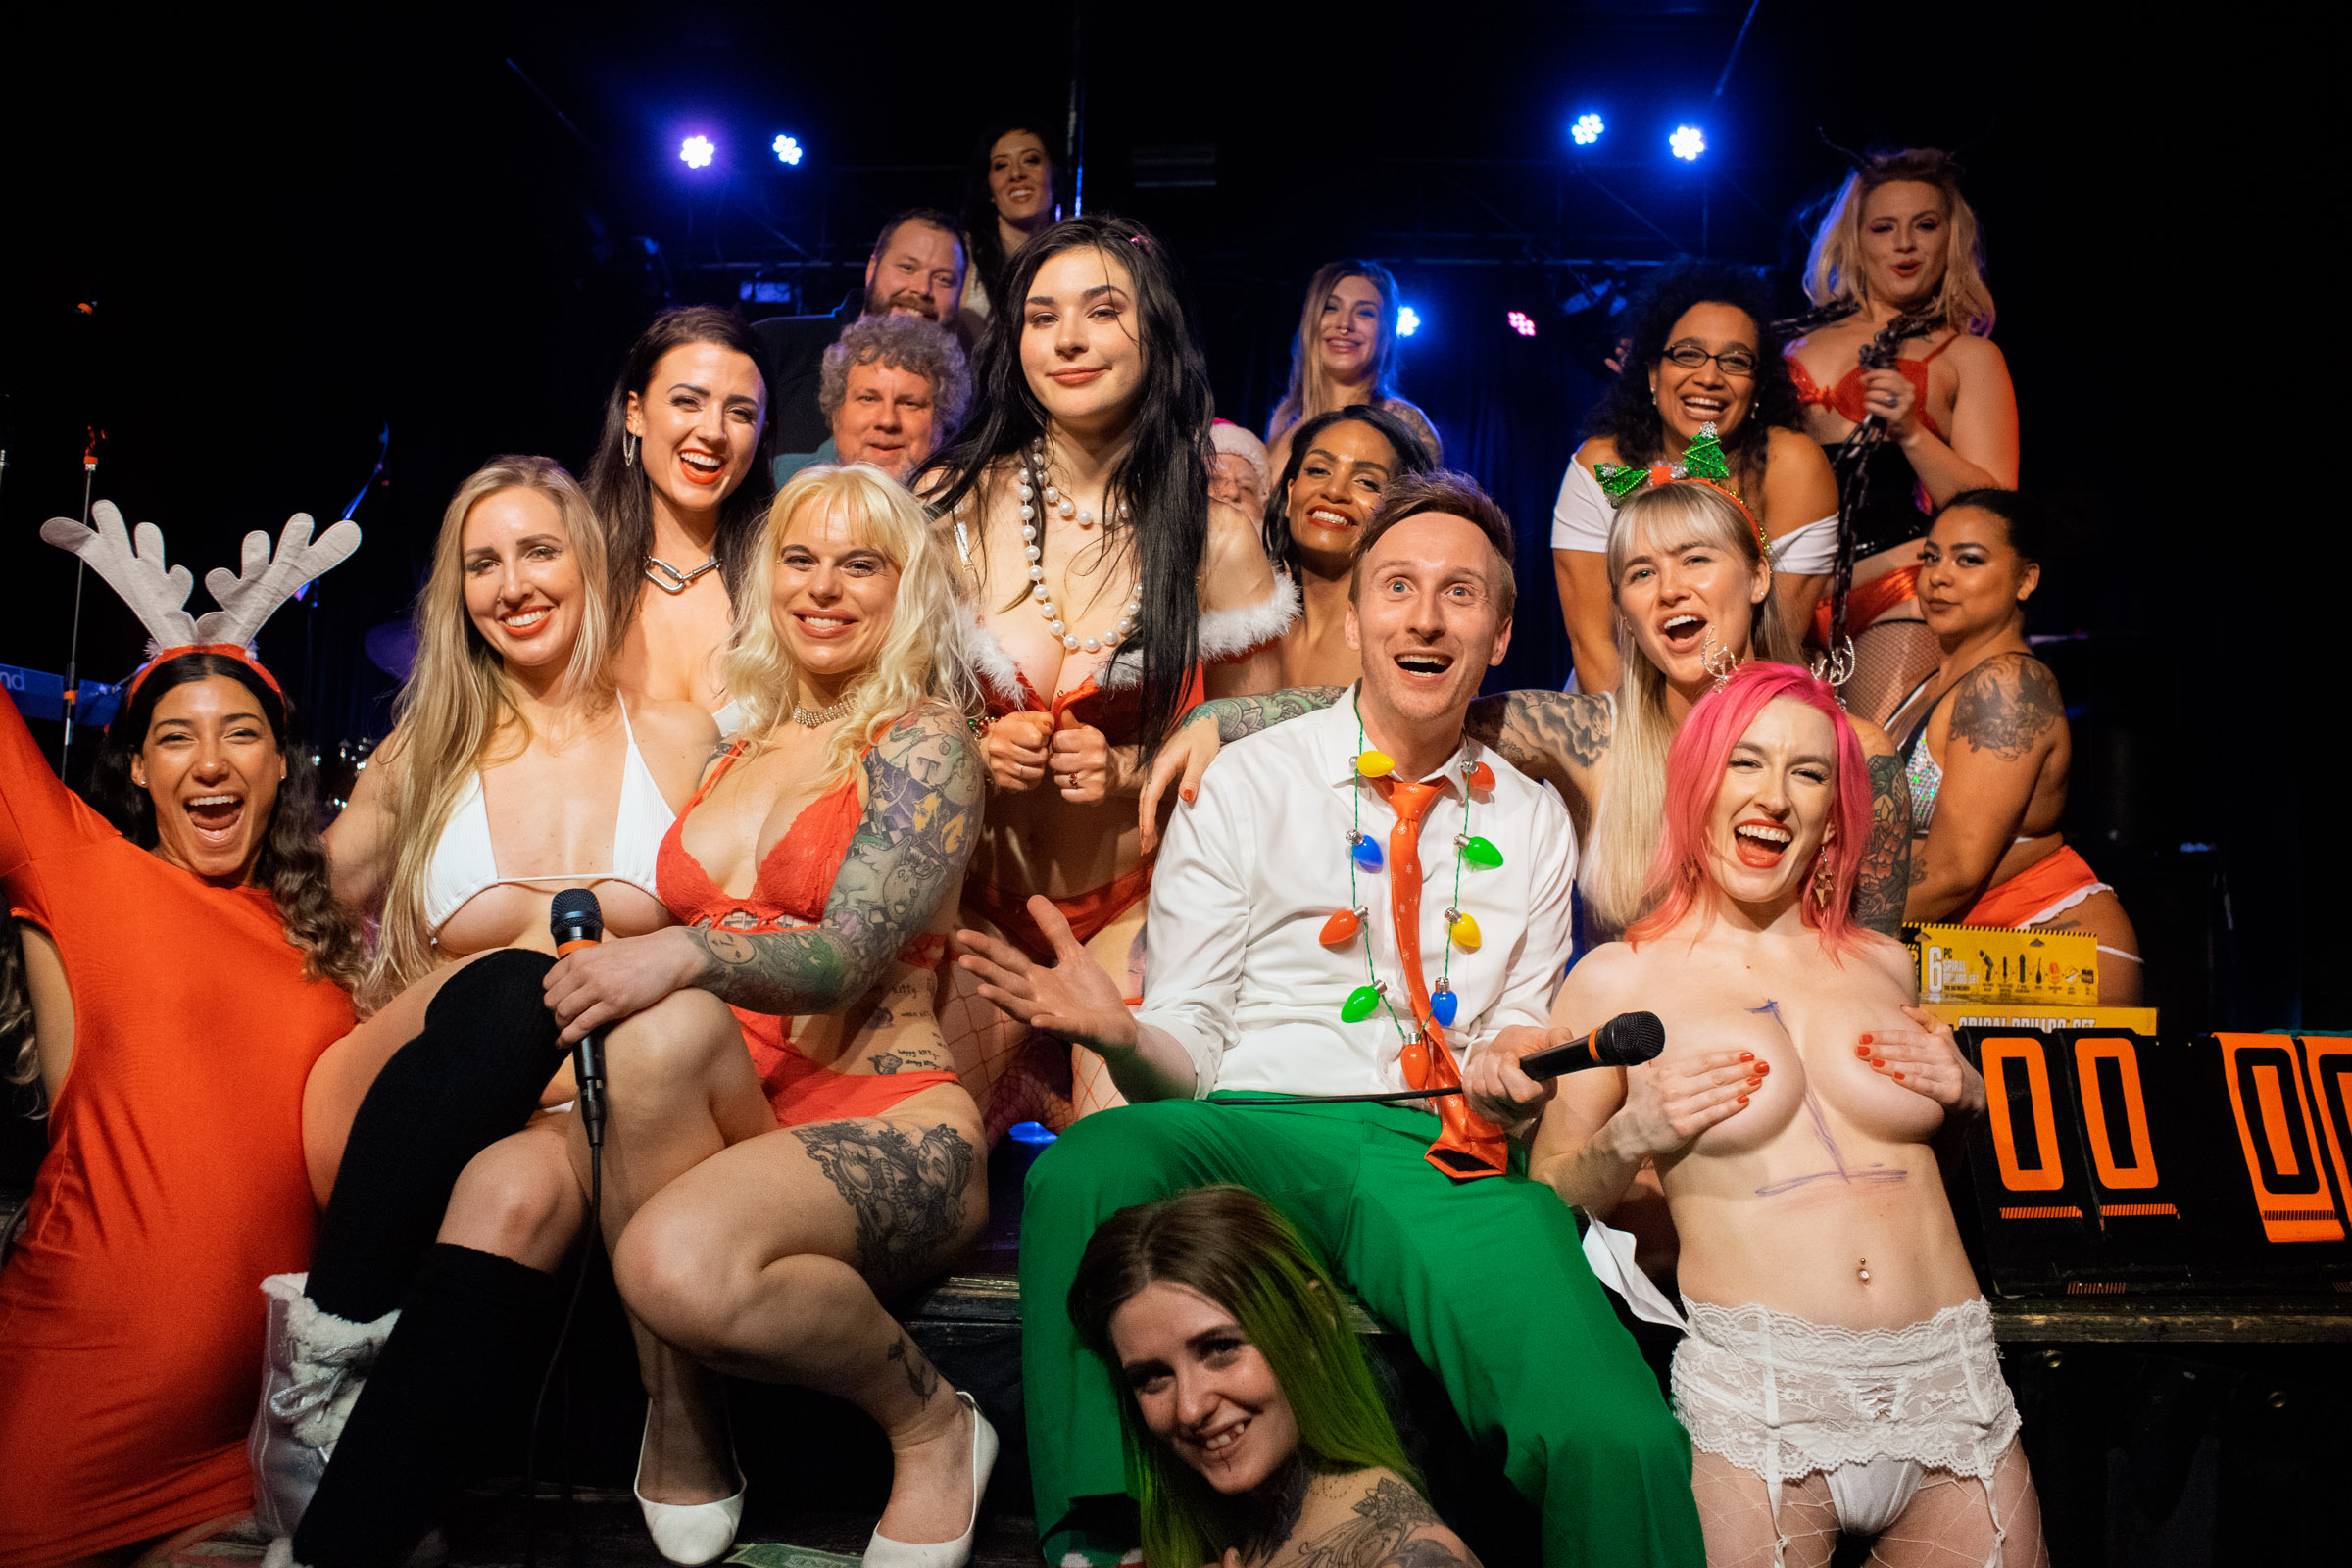 """Tatas for Toys"" 2019 fundraiser charity strippers portland pdx oregon Dante's live Aaron Ross comedian Toxic dancers Xmas holidays benefit comedy funny party Doernbecher wild sexy hot babes"